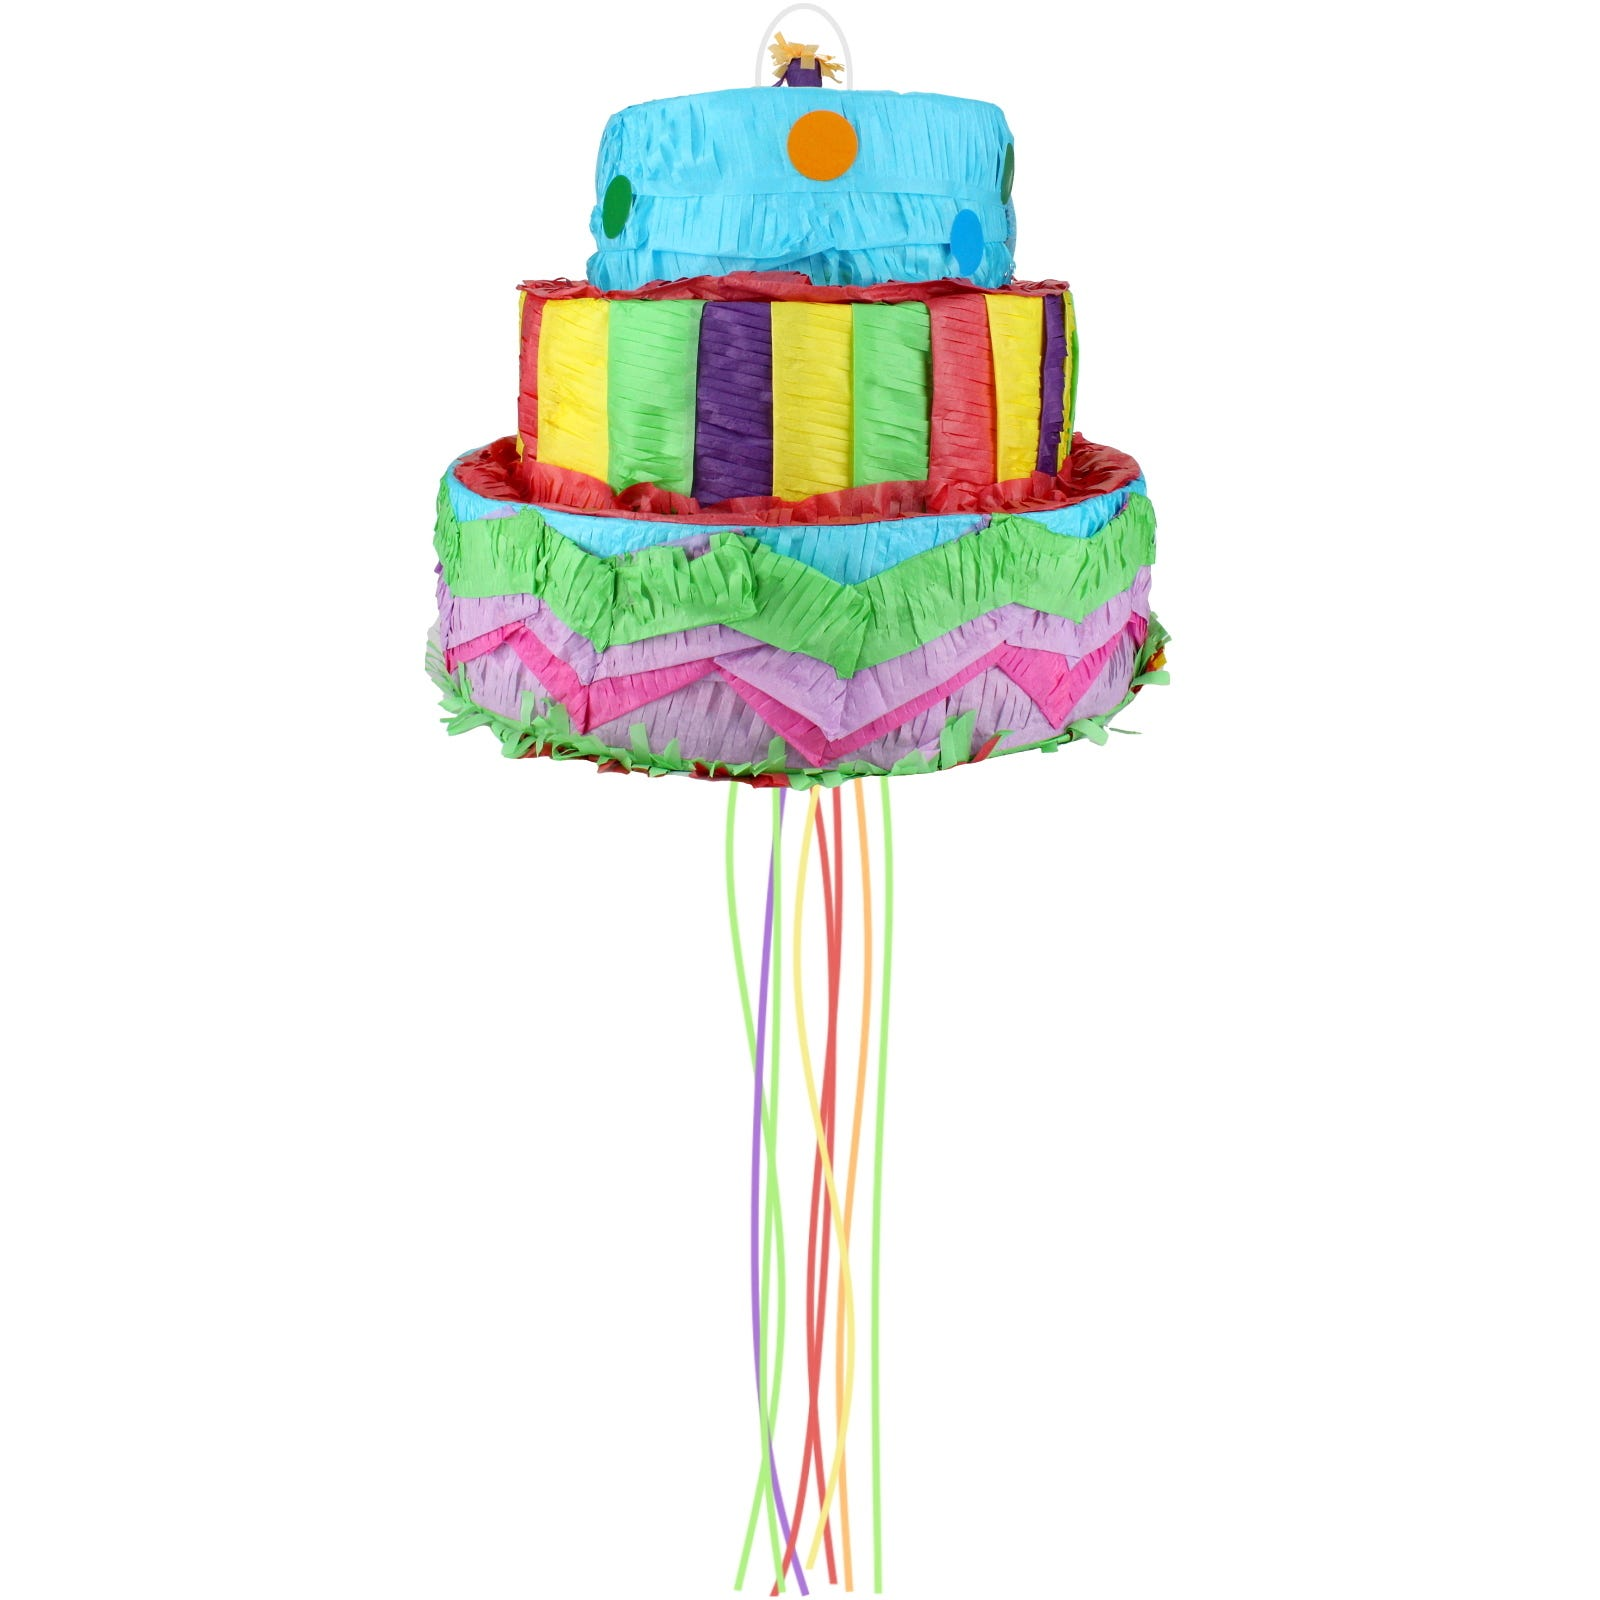 Superb 3D Three Tier Birthday Cake Pull String Pinata Pinyata Pinyarta Funny Birthday Cards Online Elaedamsfinfo